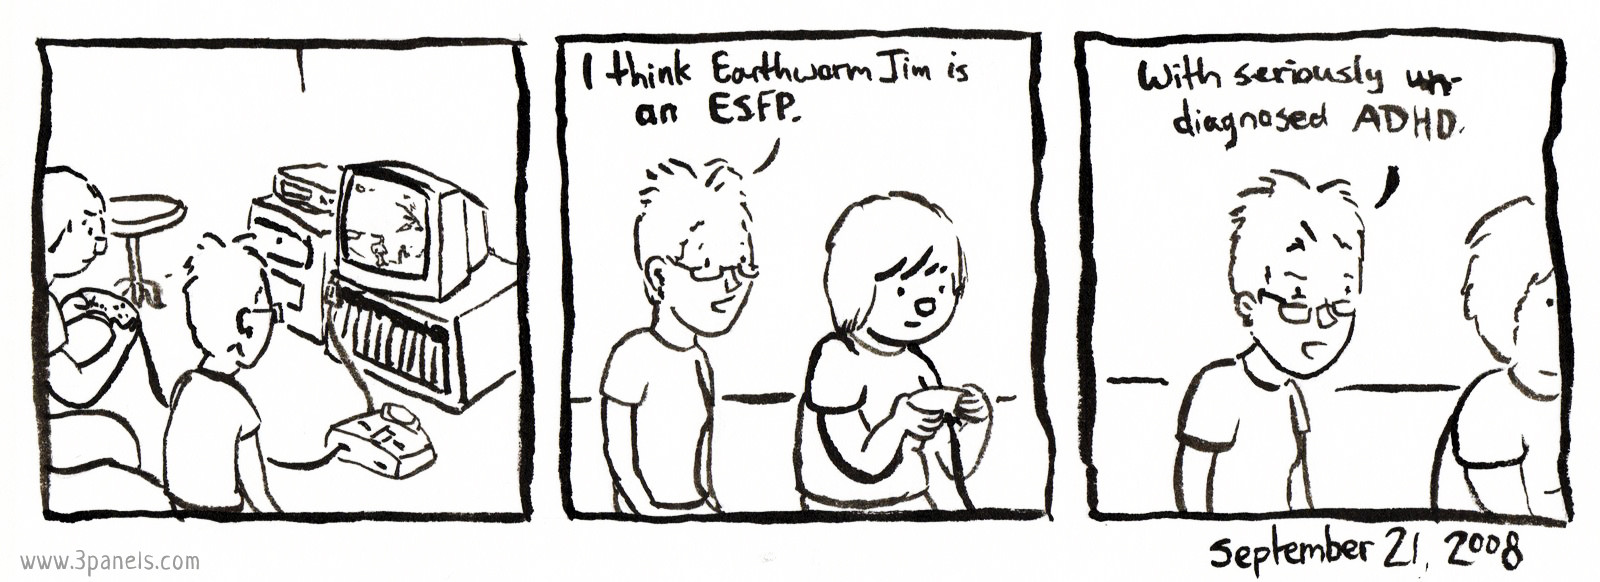 "Hannah is watching Dean play the game Earthworm Jim on the Super Nintendo. Hannah says: ""I think Earthworm Jim is an ESFP. With seriously un-diagnosed ADHD."""